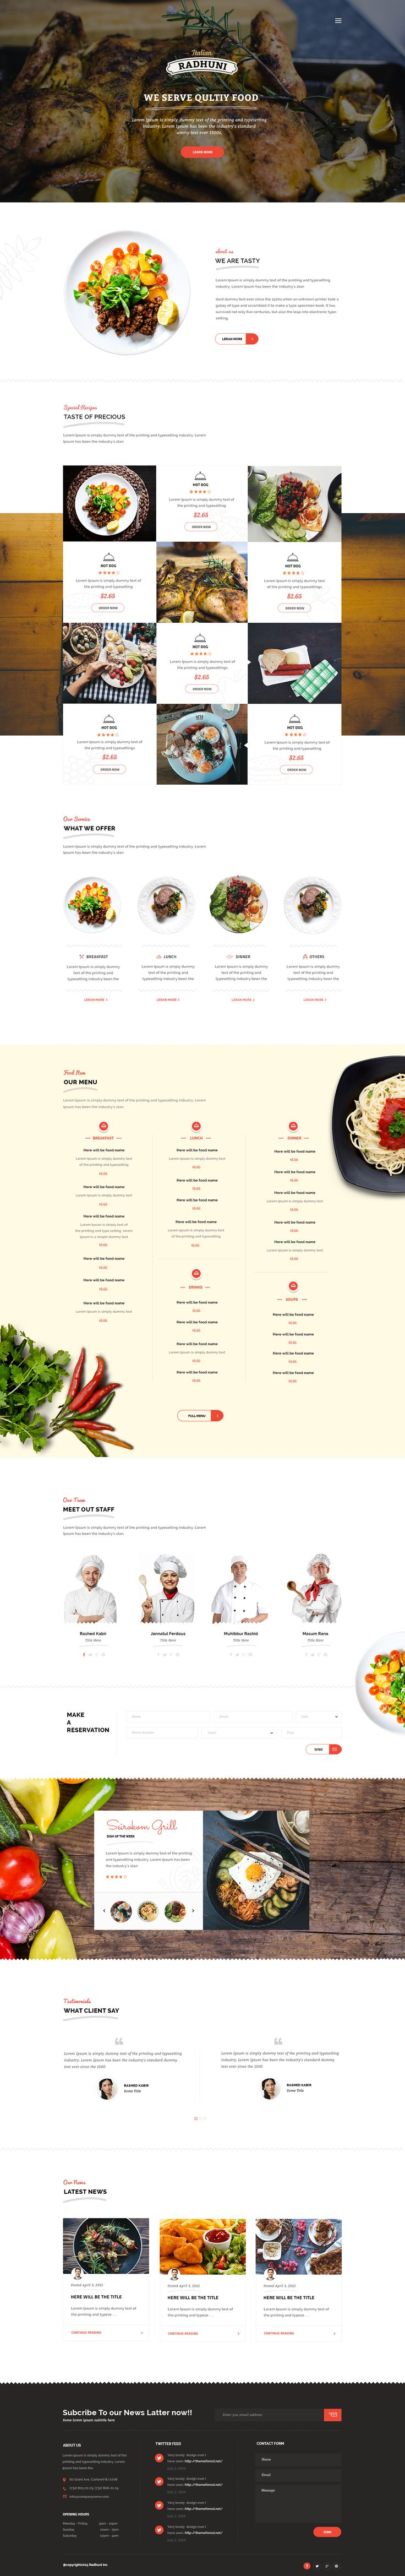 Italian Radhuni - Food & Resturant WordPress Theme #wordpress #pizza #chef • Download ➝ https://themeforest.net/item/italian-radhuni-food-resturant-wordpress-theme/12006256?ref=pxcr